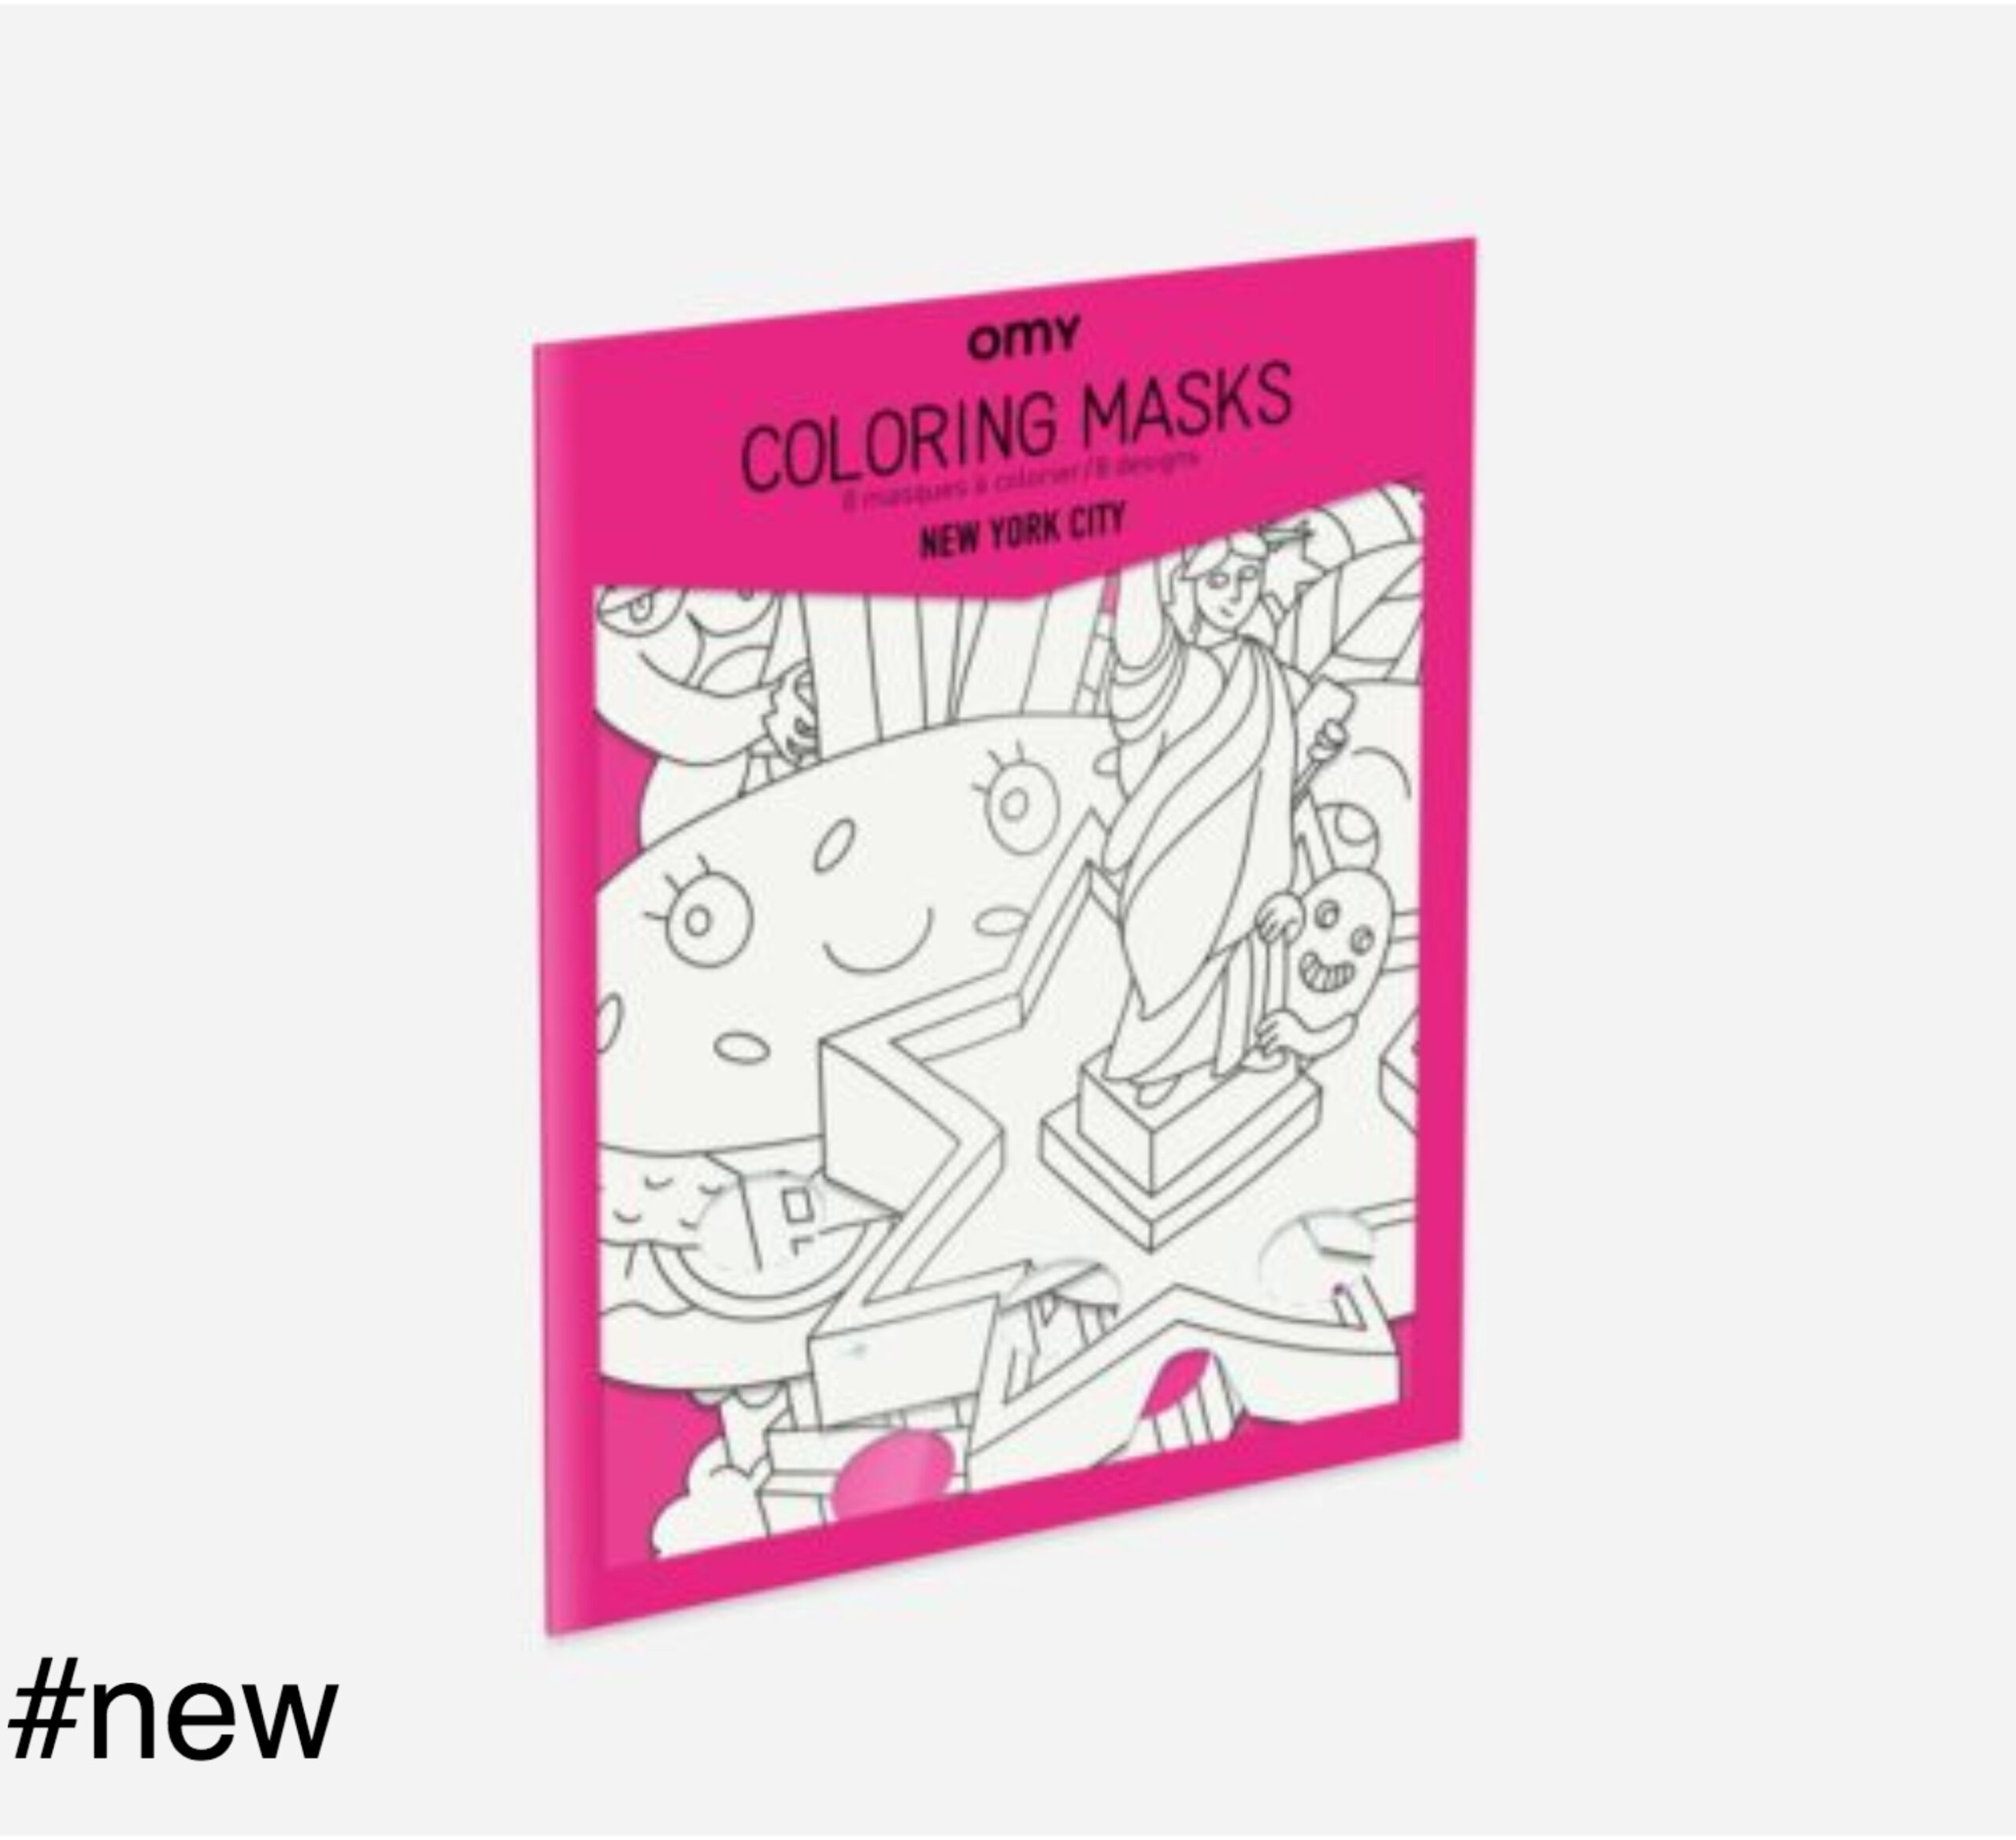 new york city omy coloring masks